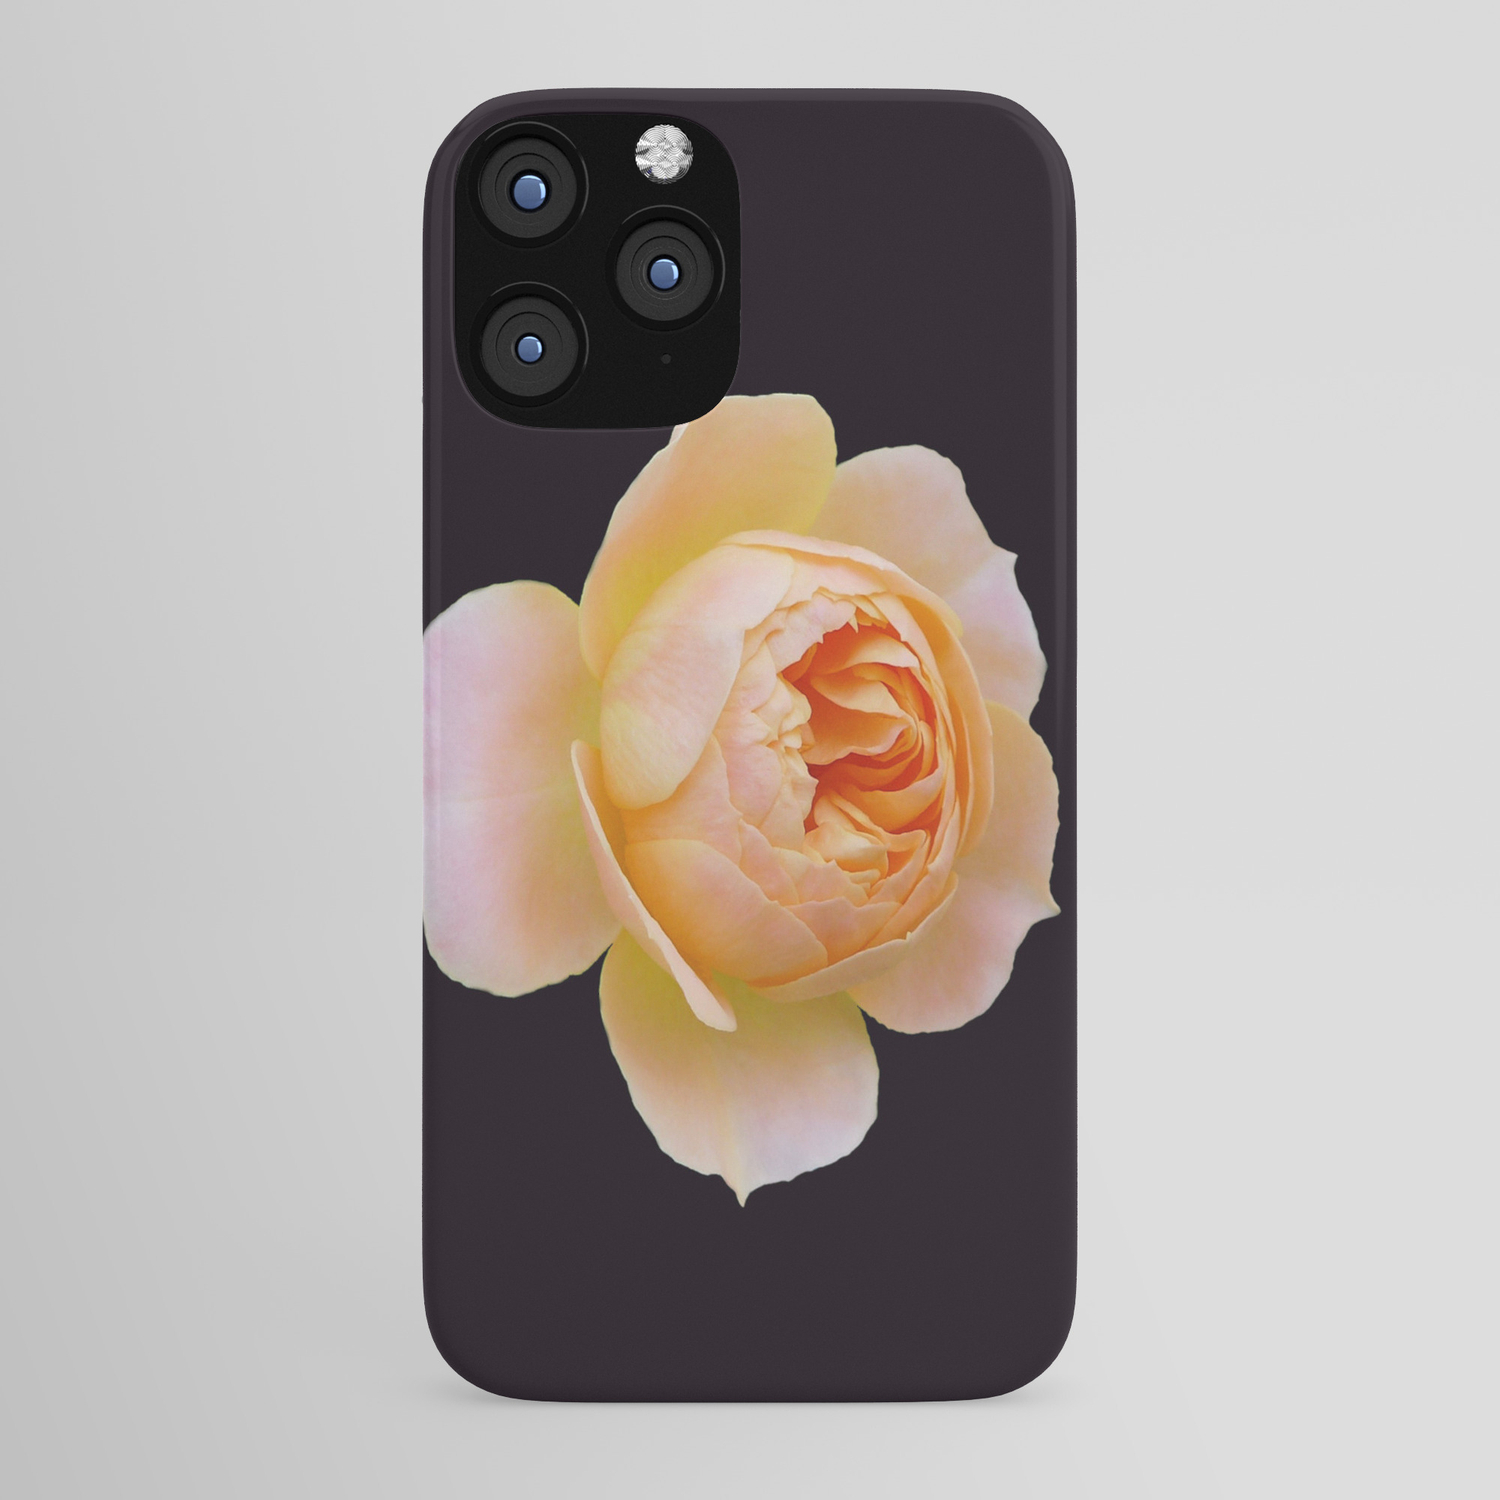 portrait of a rose on black background iphone case